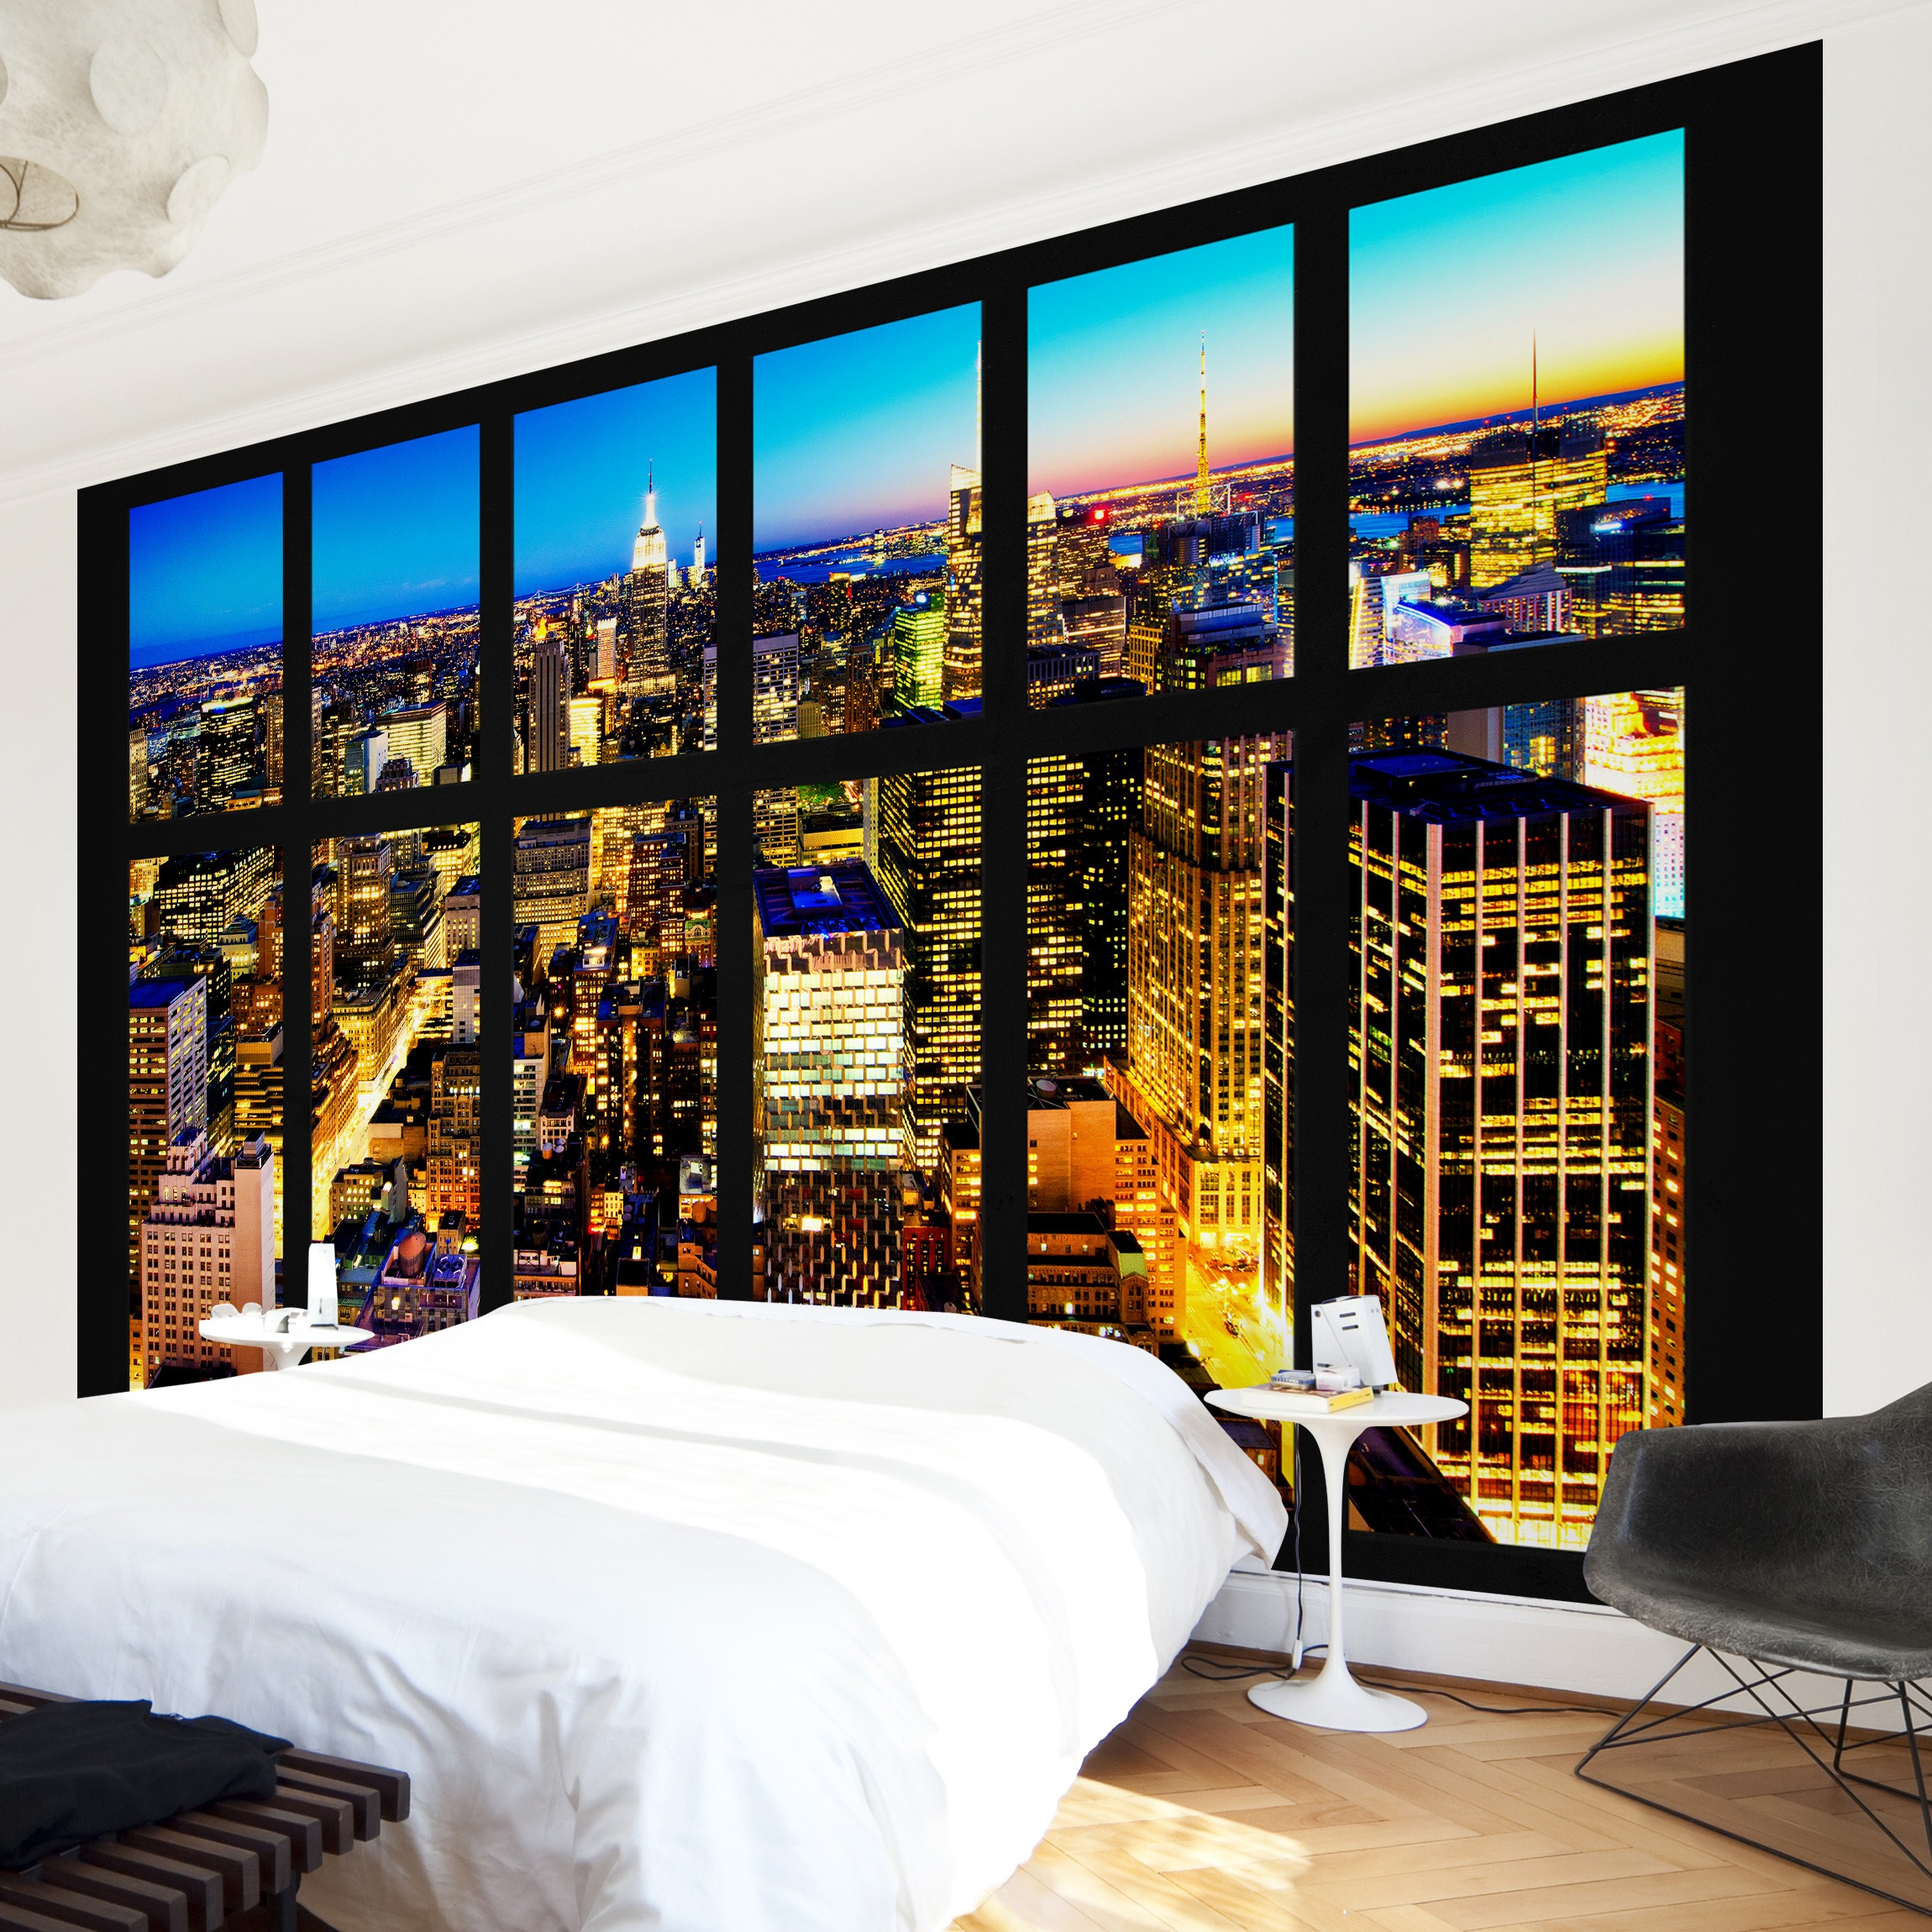 new york fototapete selbstklebend fensterblick manhattan skyline bei nacht. Black Bedroom Furniture Sets. Home Design Ideas